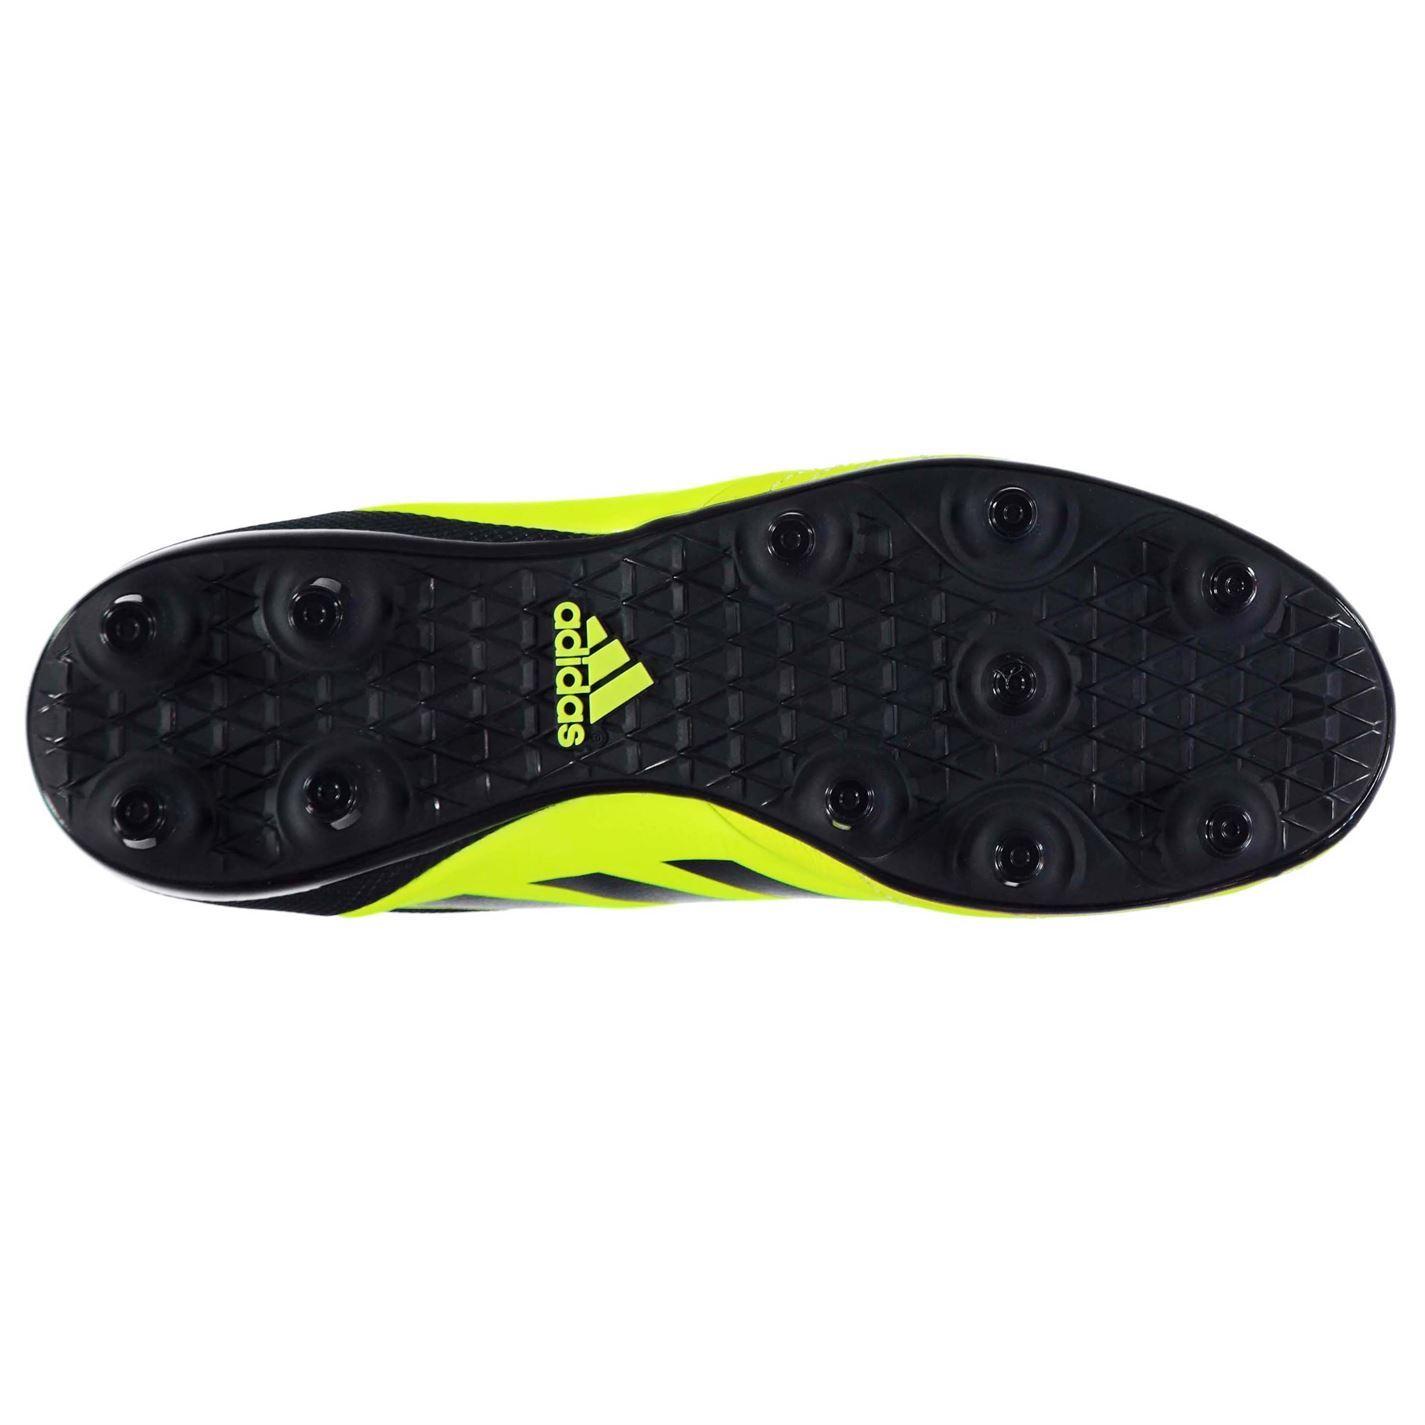 another chance 4796f 87546 ... adidas Copa 17.3 FG Firm Ground Football Boots Mens Yellow Soccer Shoes  Cleats ...